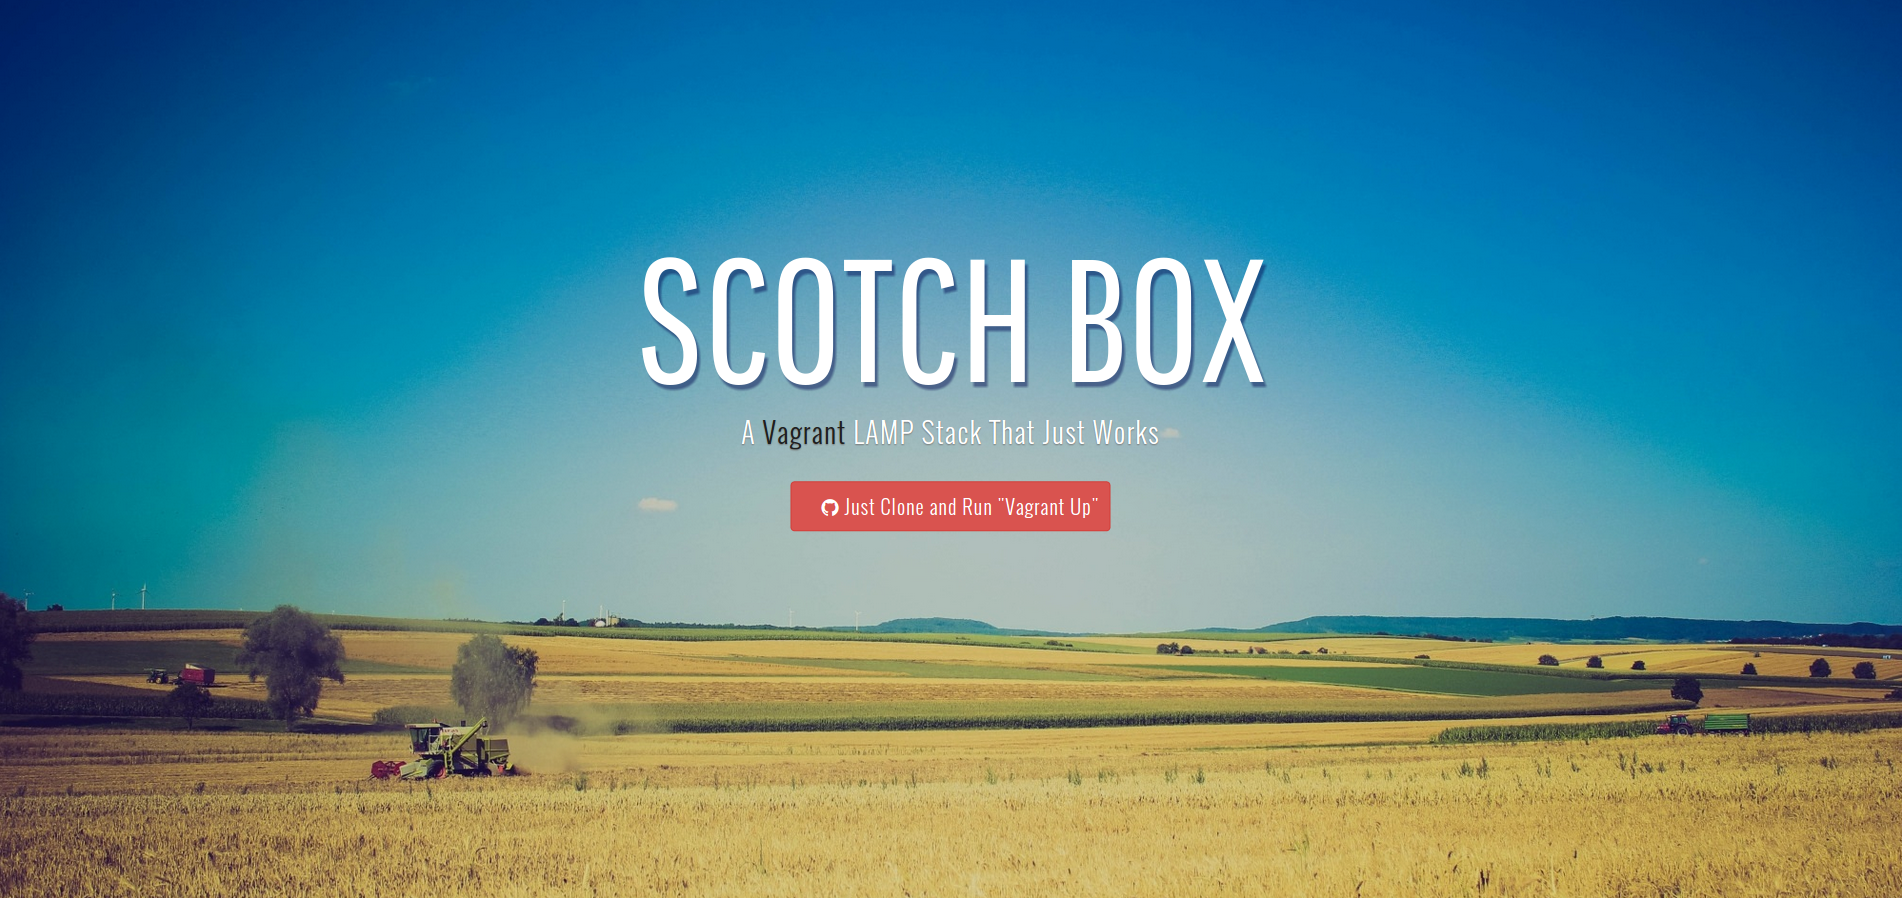 scotchbox